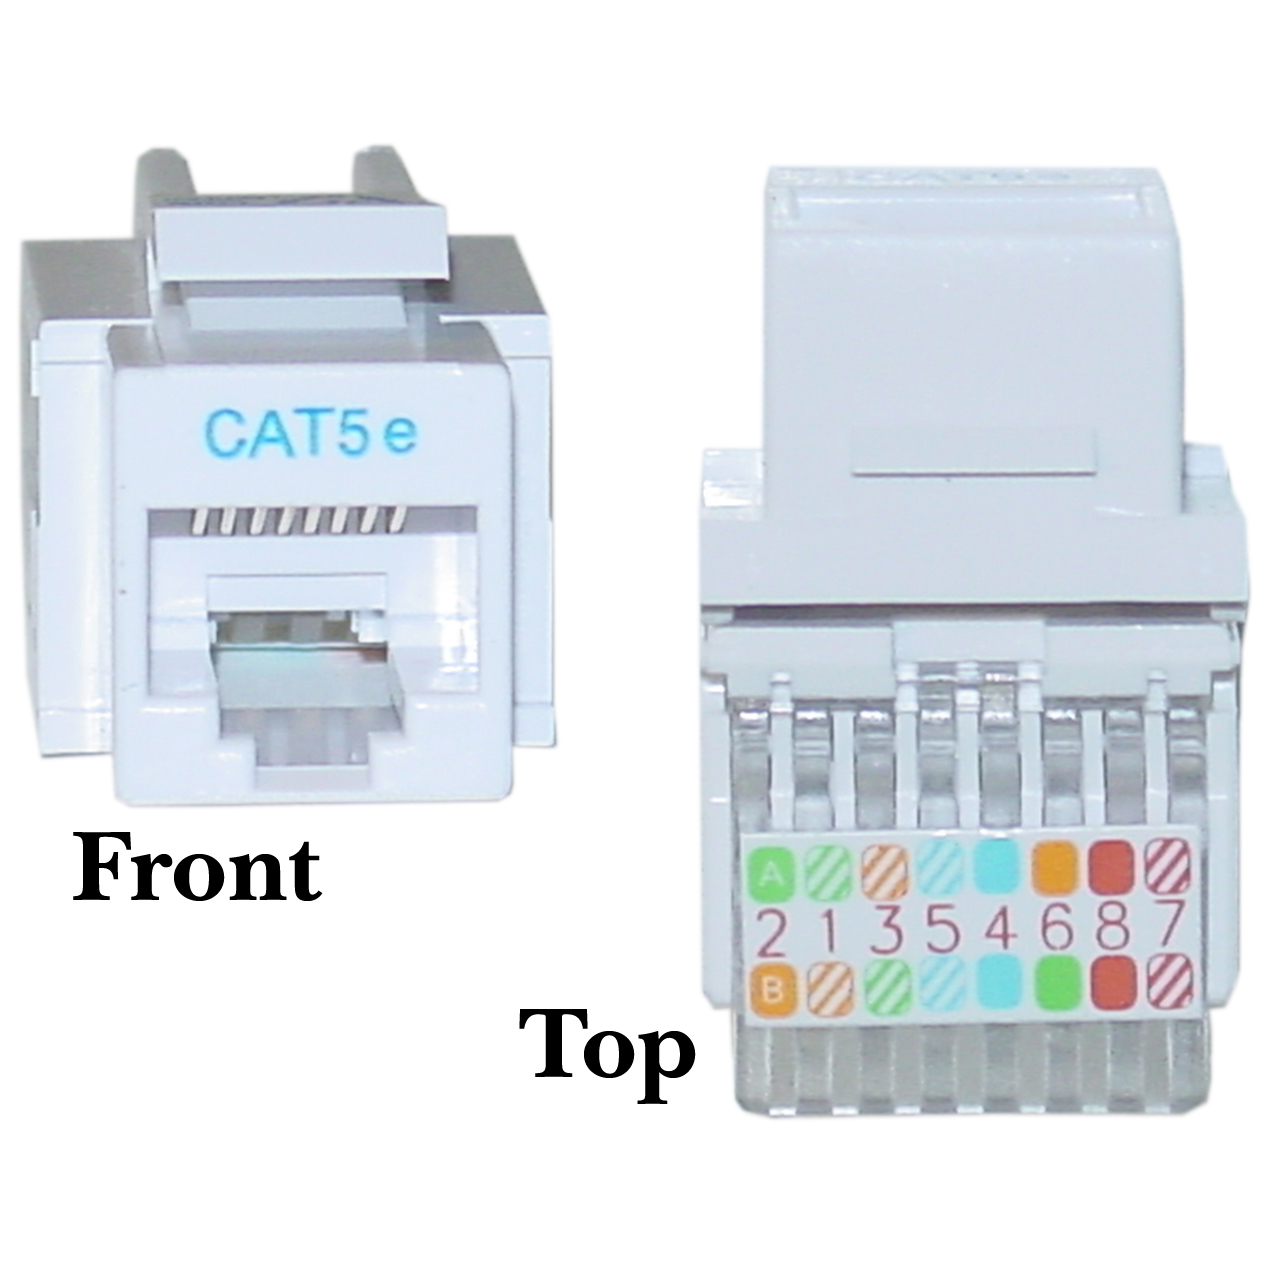 Female Rj45 Jack Wiring Great Design Of Diagram Connector White Cat5e Keystone Toolless Cablewholesale Wall 568b Color Code